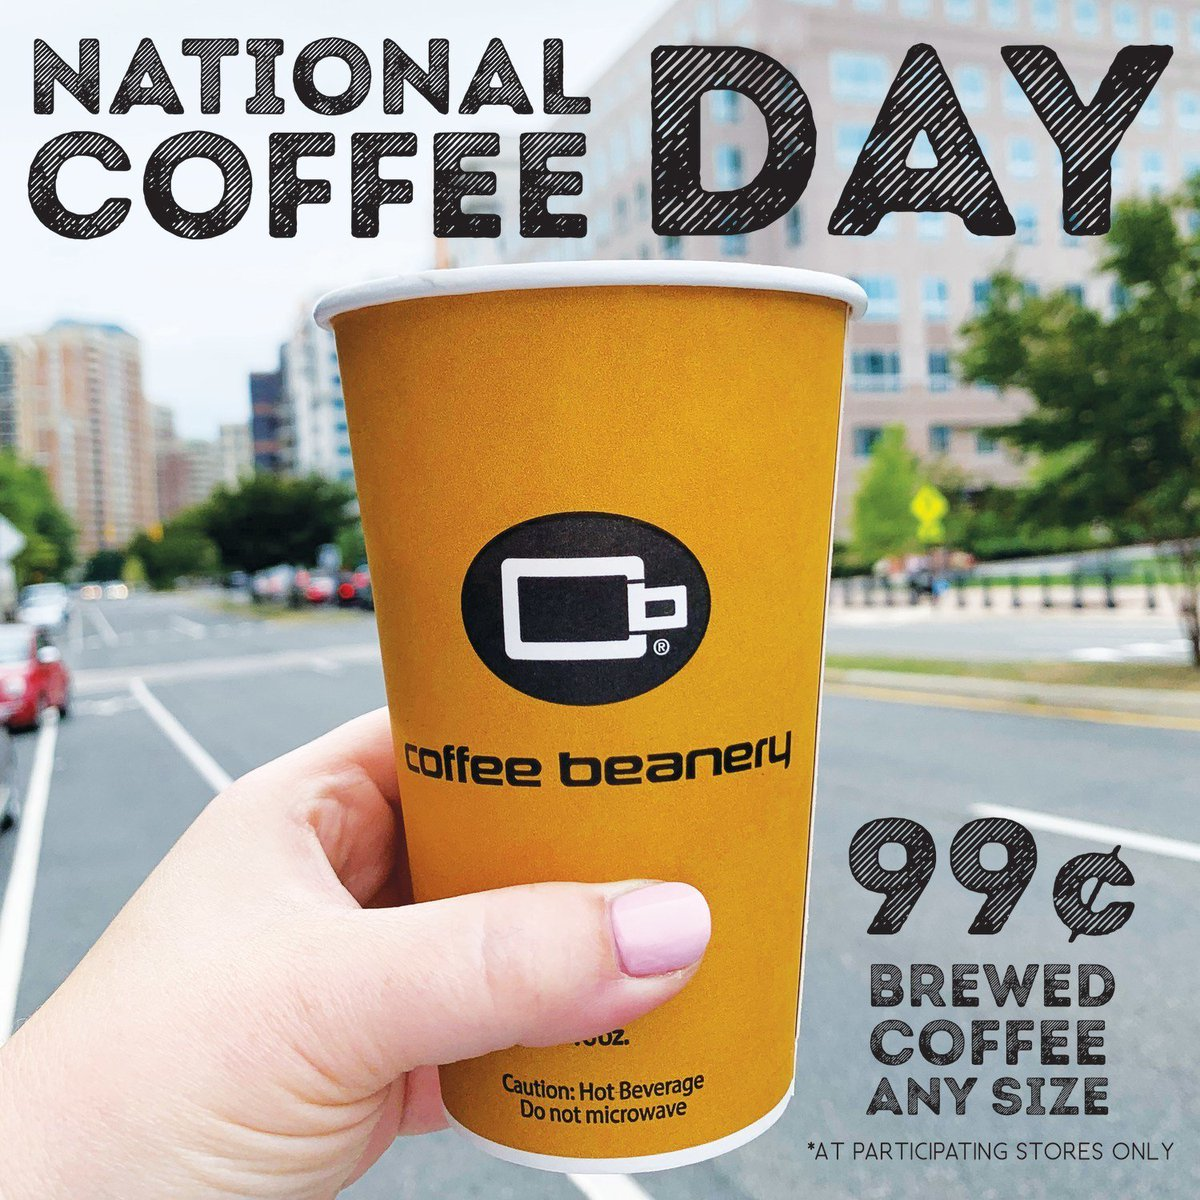 Coffee Beanery Offers 99¢ Any Size Brewed Coffee on National Coffee Day (9/29)! prn.to/2m5uIg9